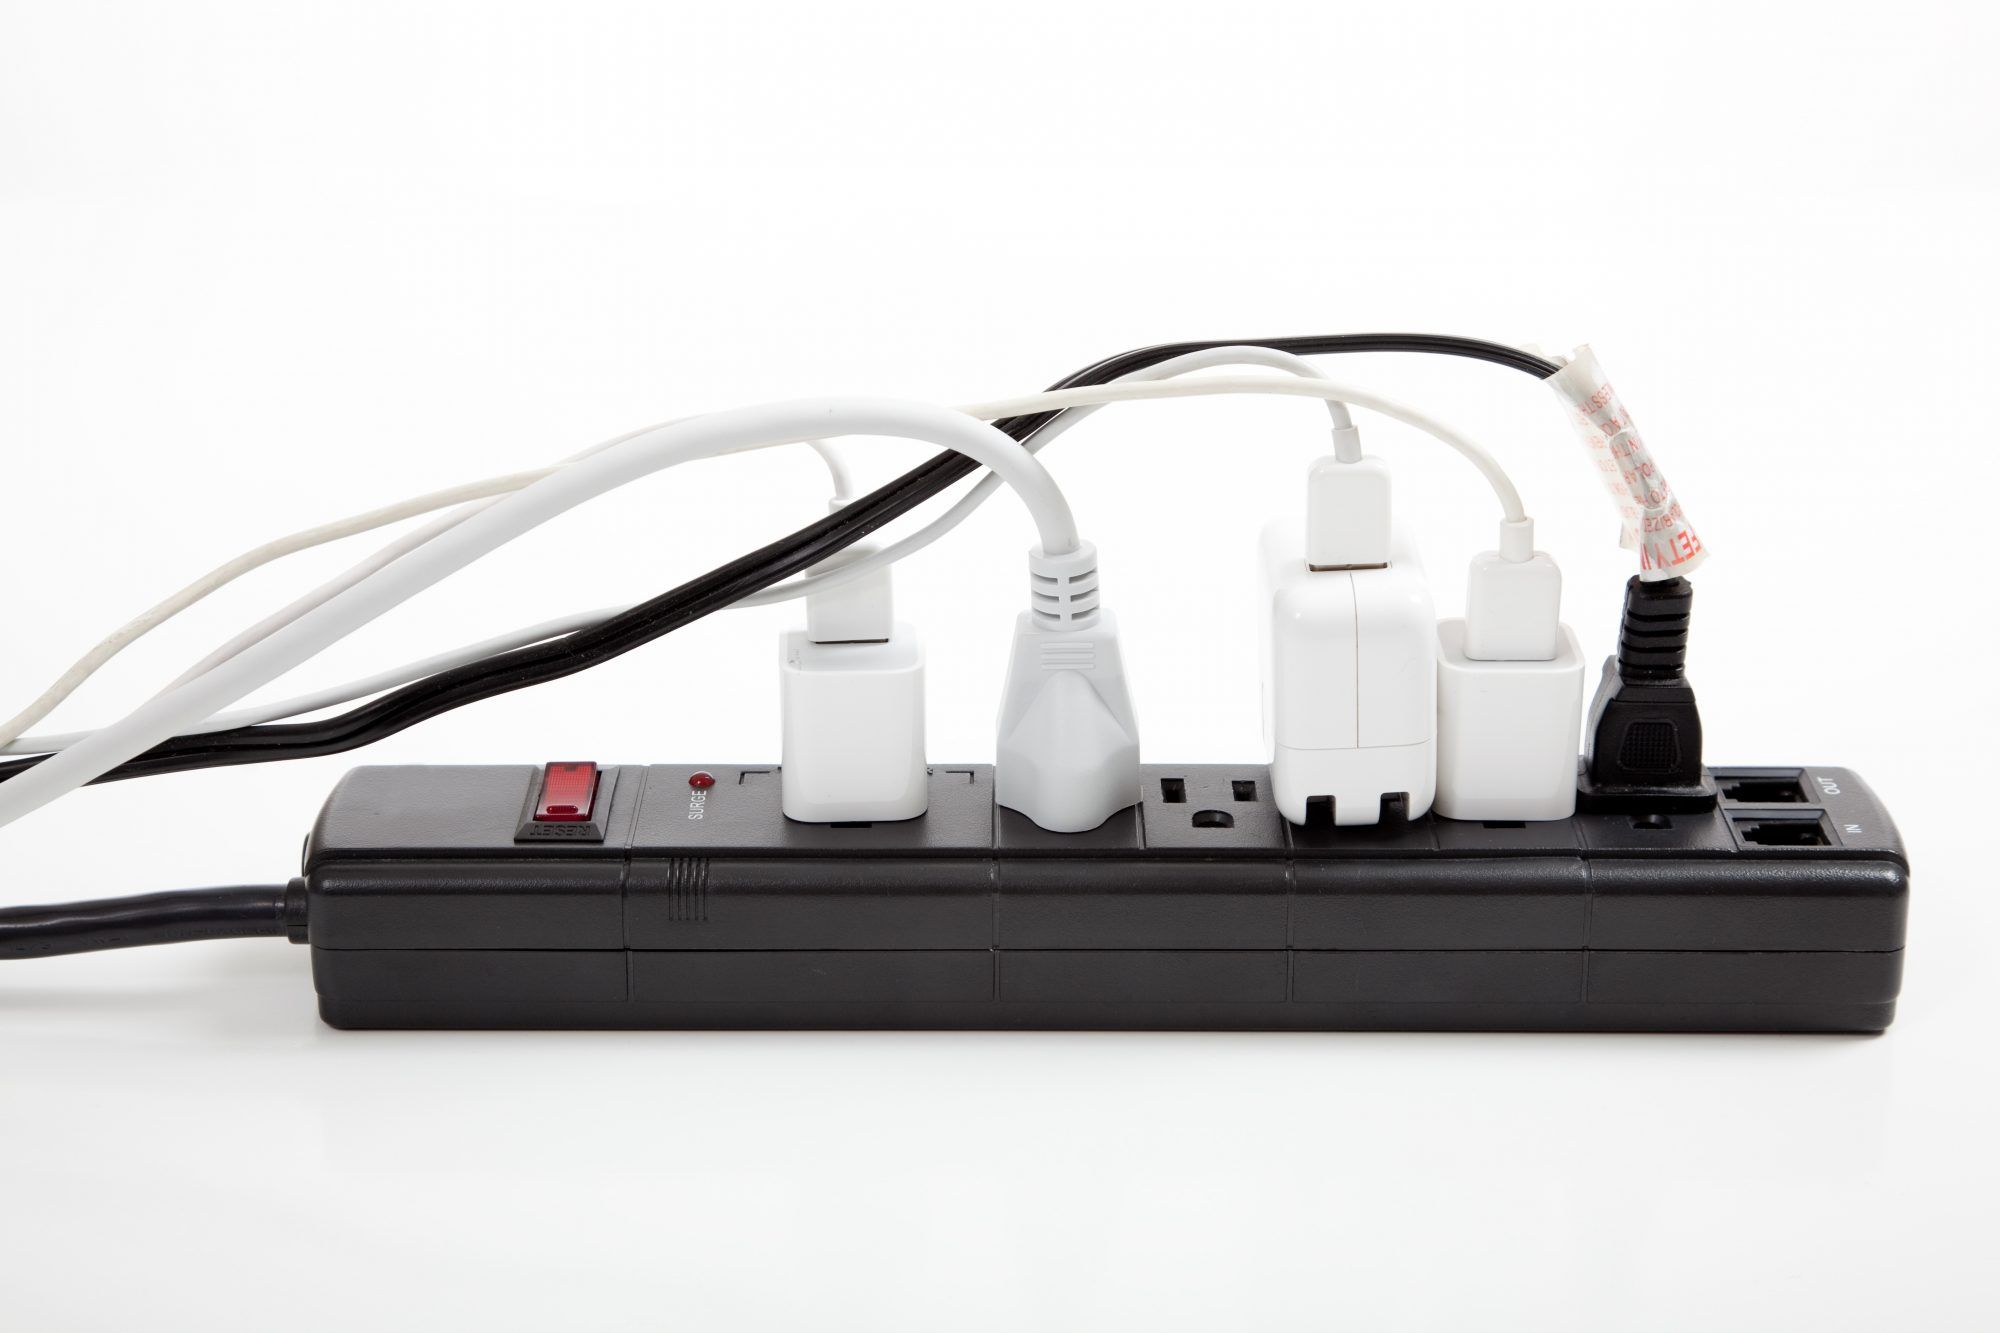 Surge protectors stopping transient power surges groundline